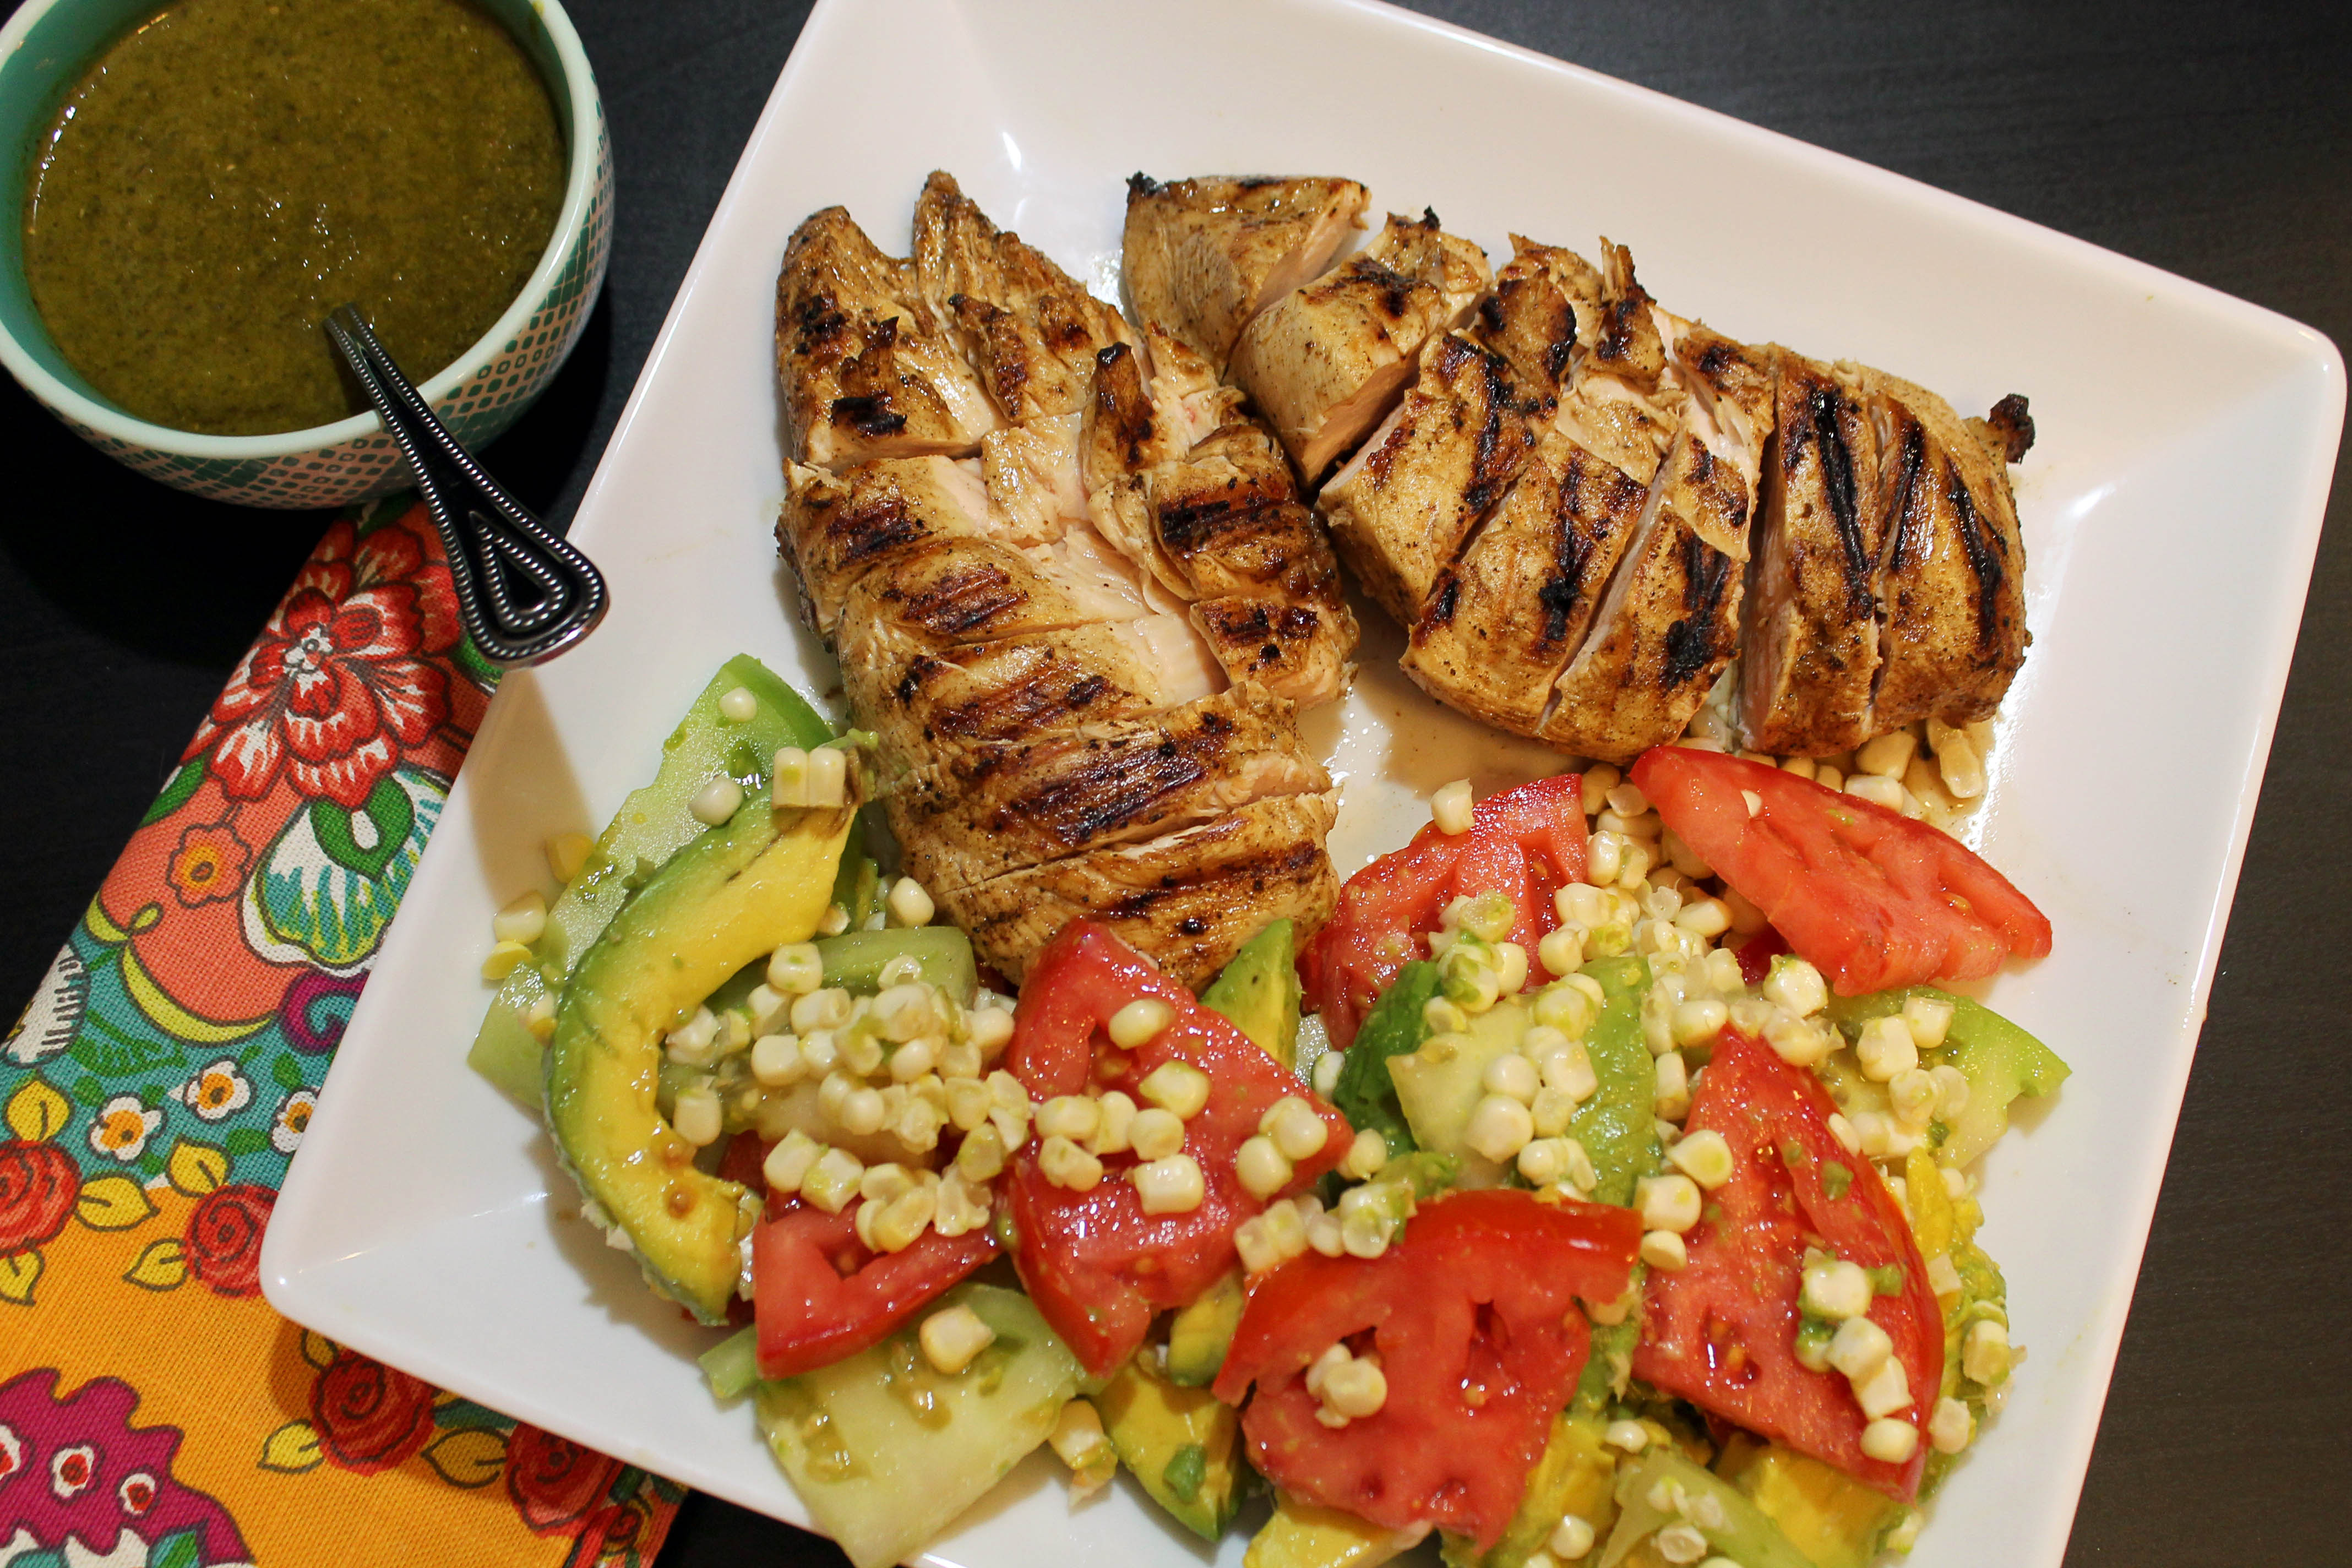 Grilled Citrus Chicken With Avocado Salad